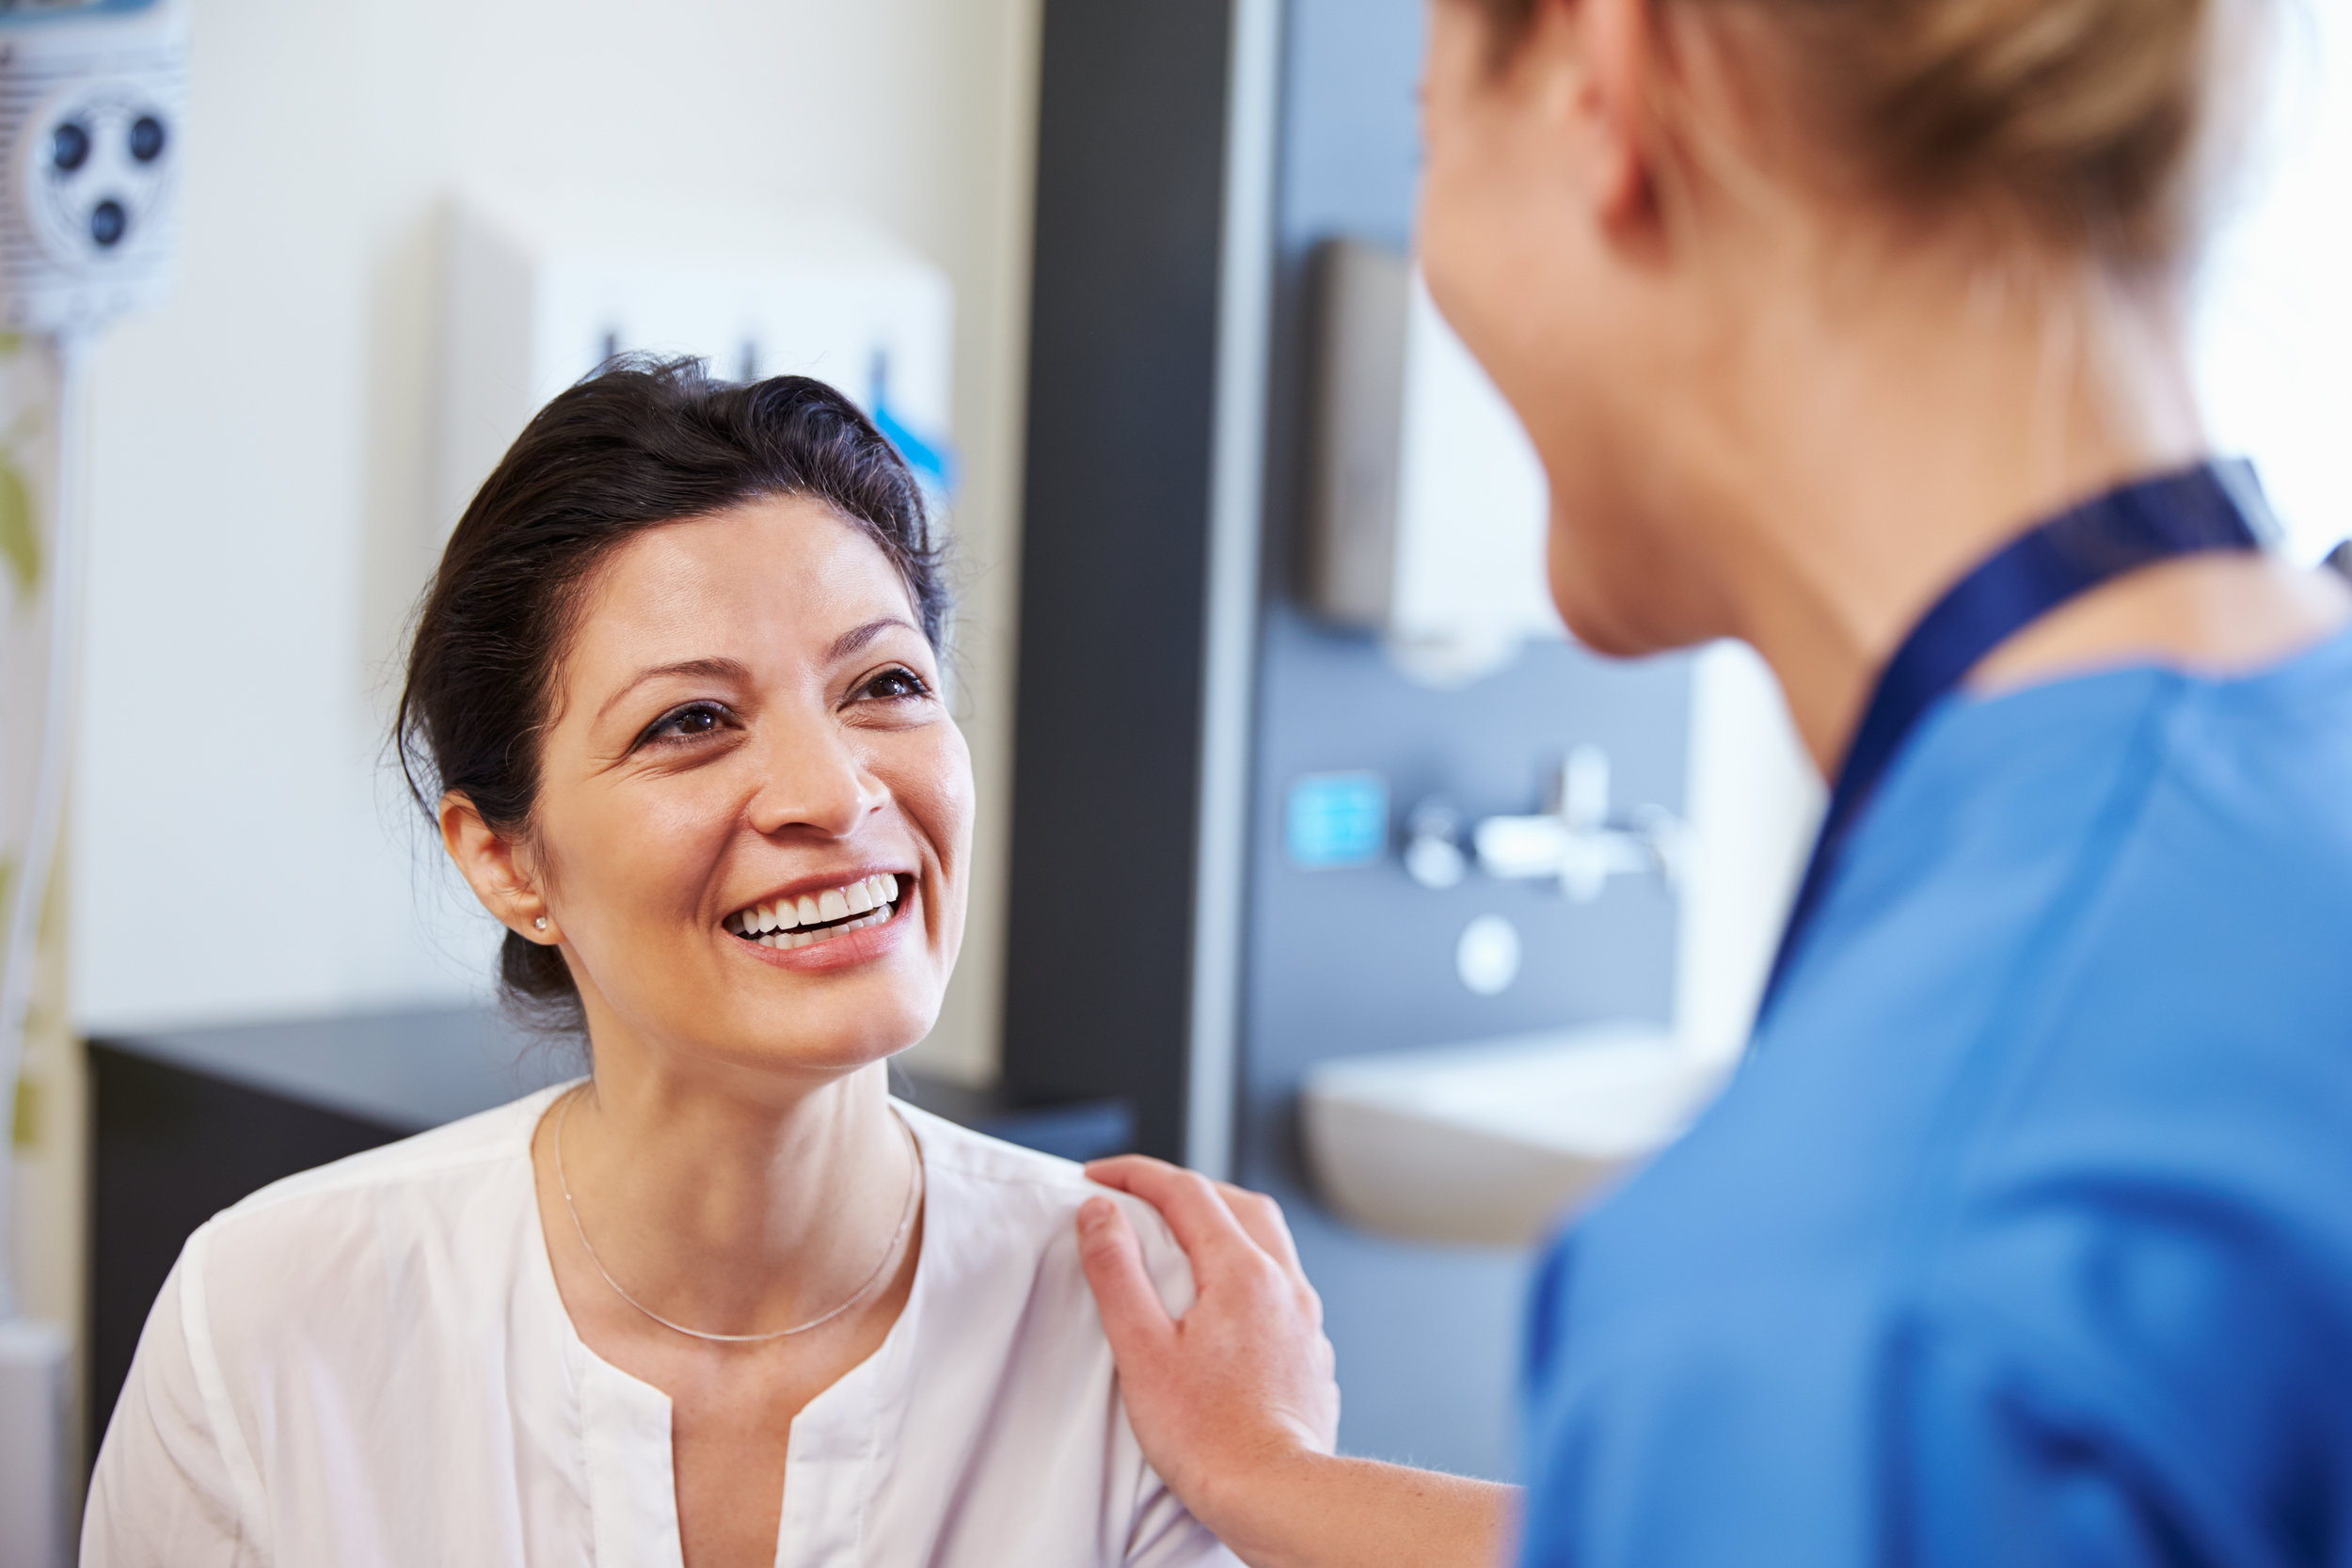 A Patient Smiling at a Healthcare Provider - Beacon Biomedical